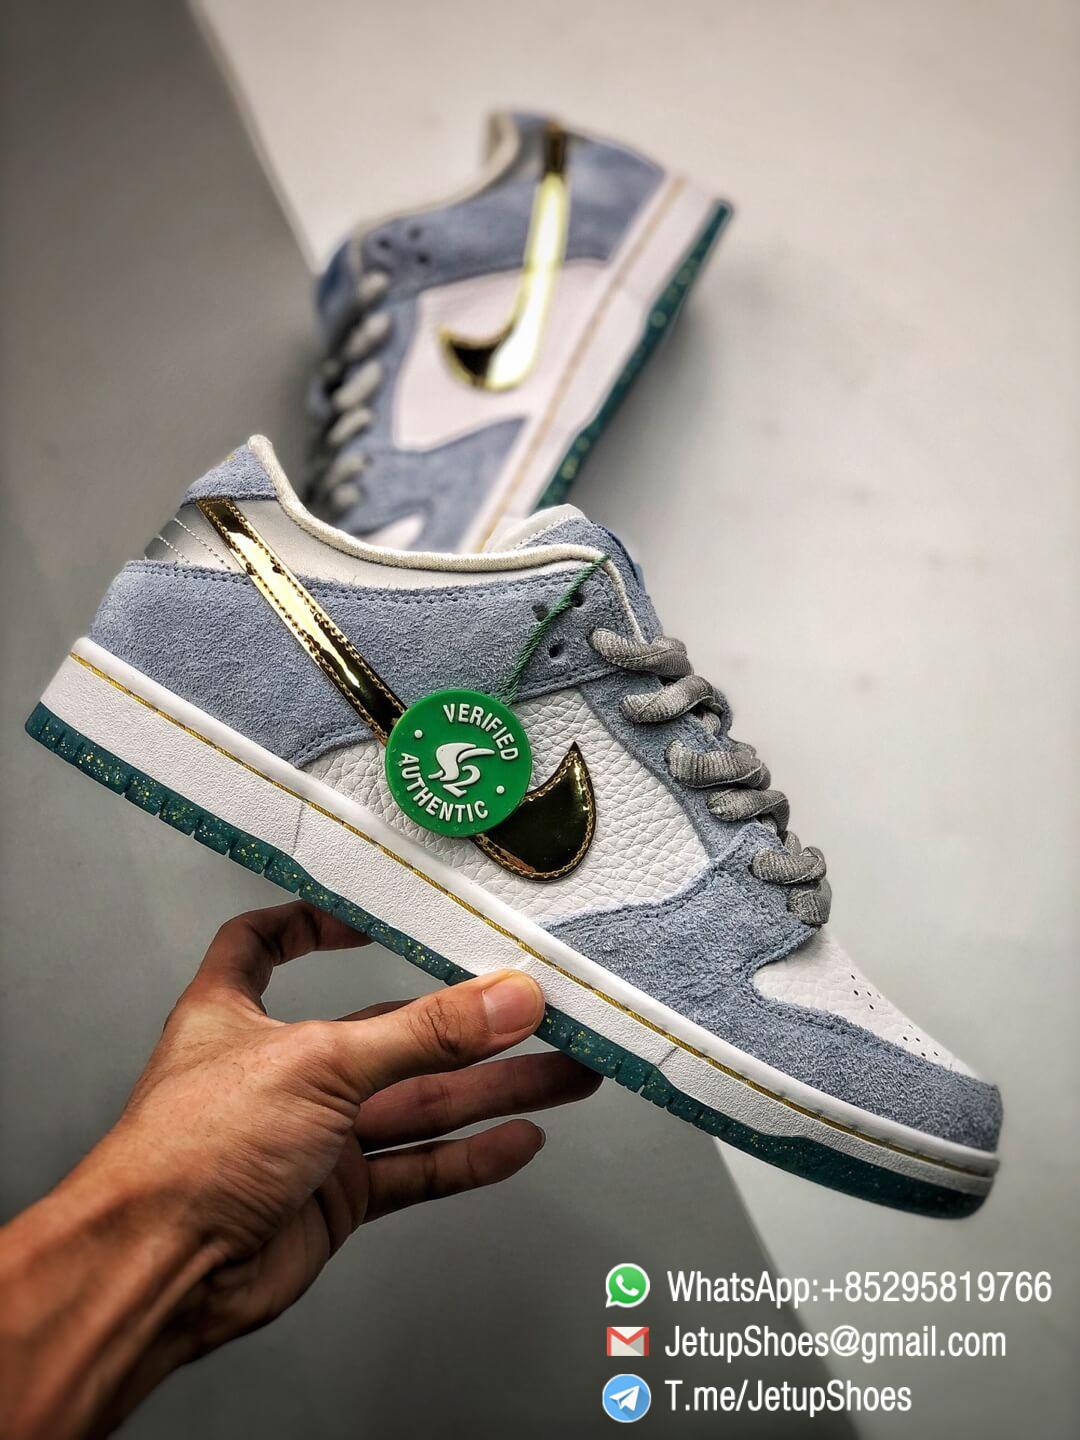 Best Replica Sneakers Sean Cliver x Nike Dunk Low SB Holiday Special DC9936 100 02